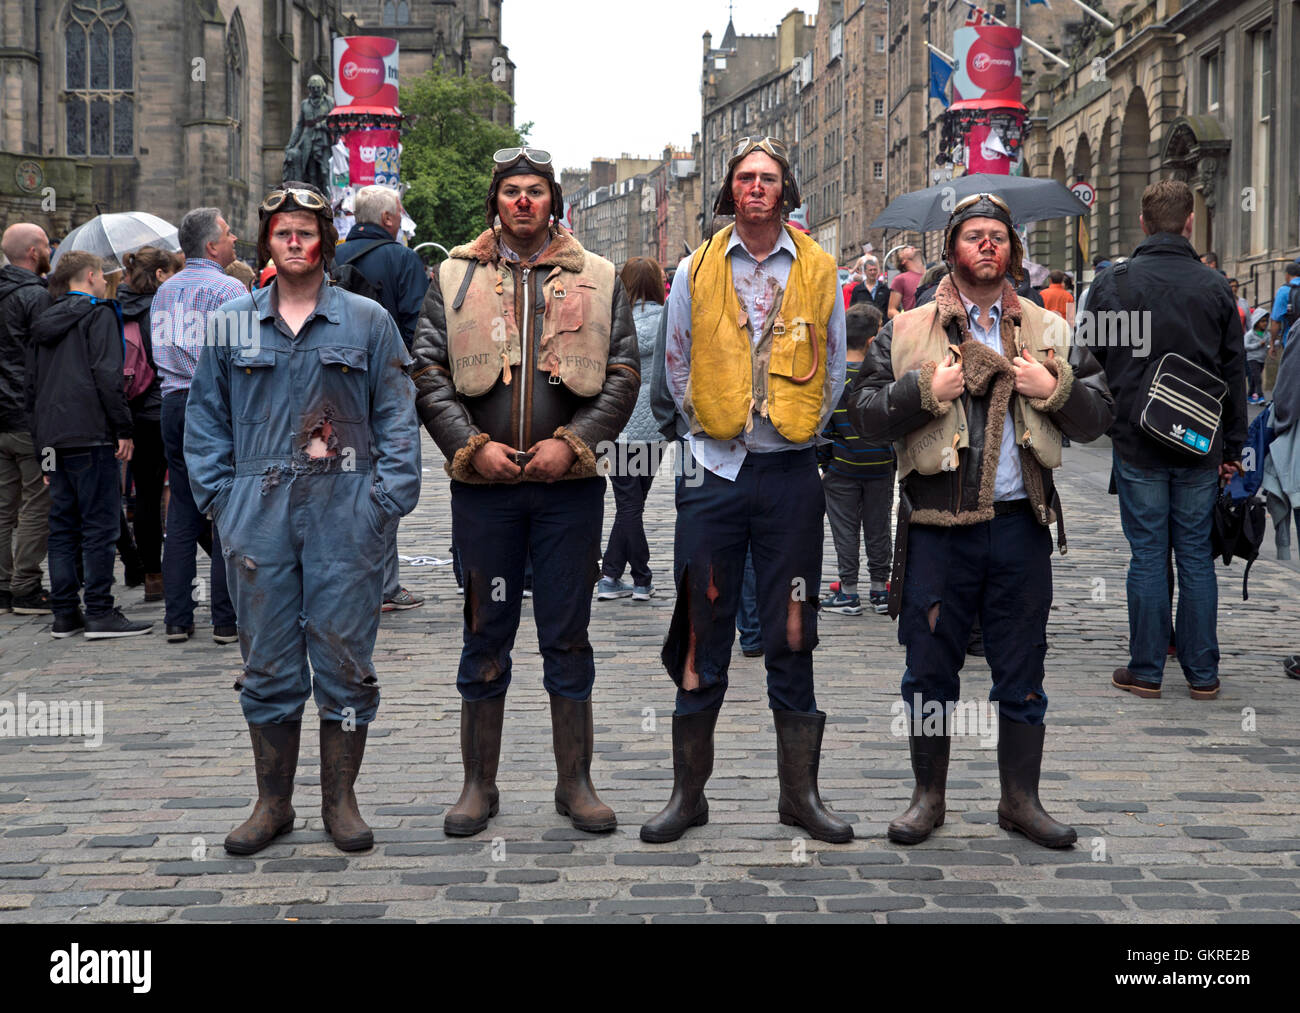 Cast members of 'Immortal' produced by GreanTea Productions promote their show on the High Street, Edinburgh. - Stock Image